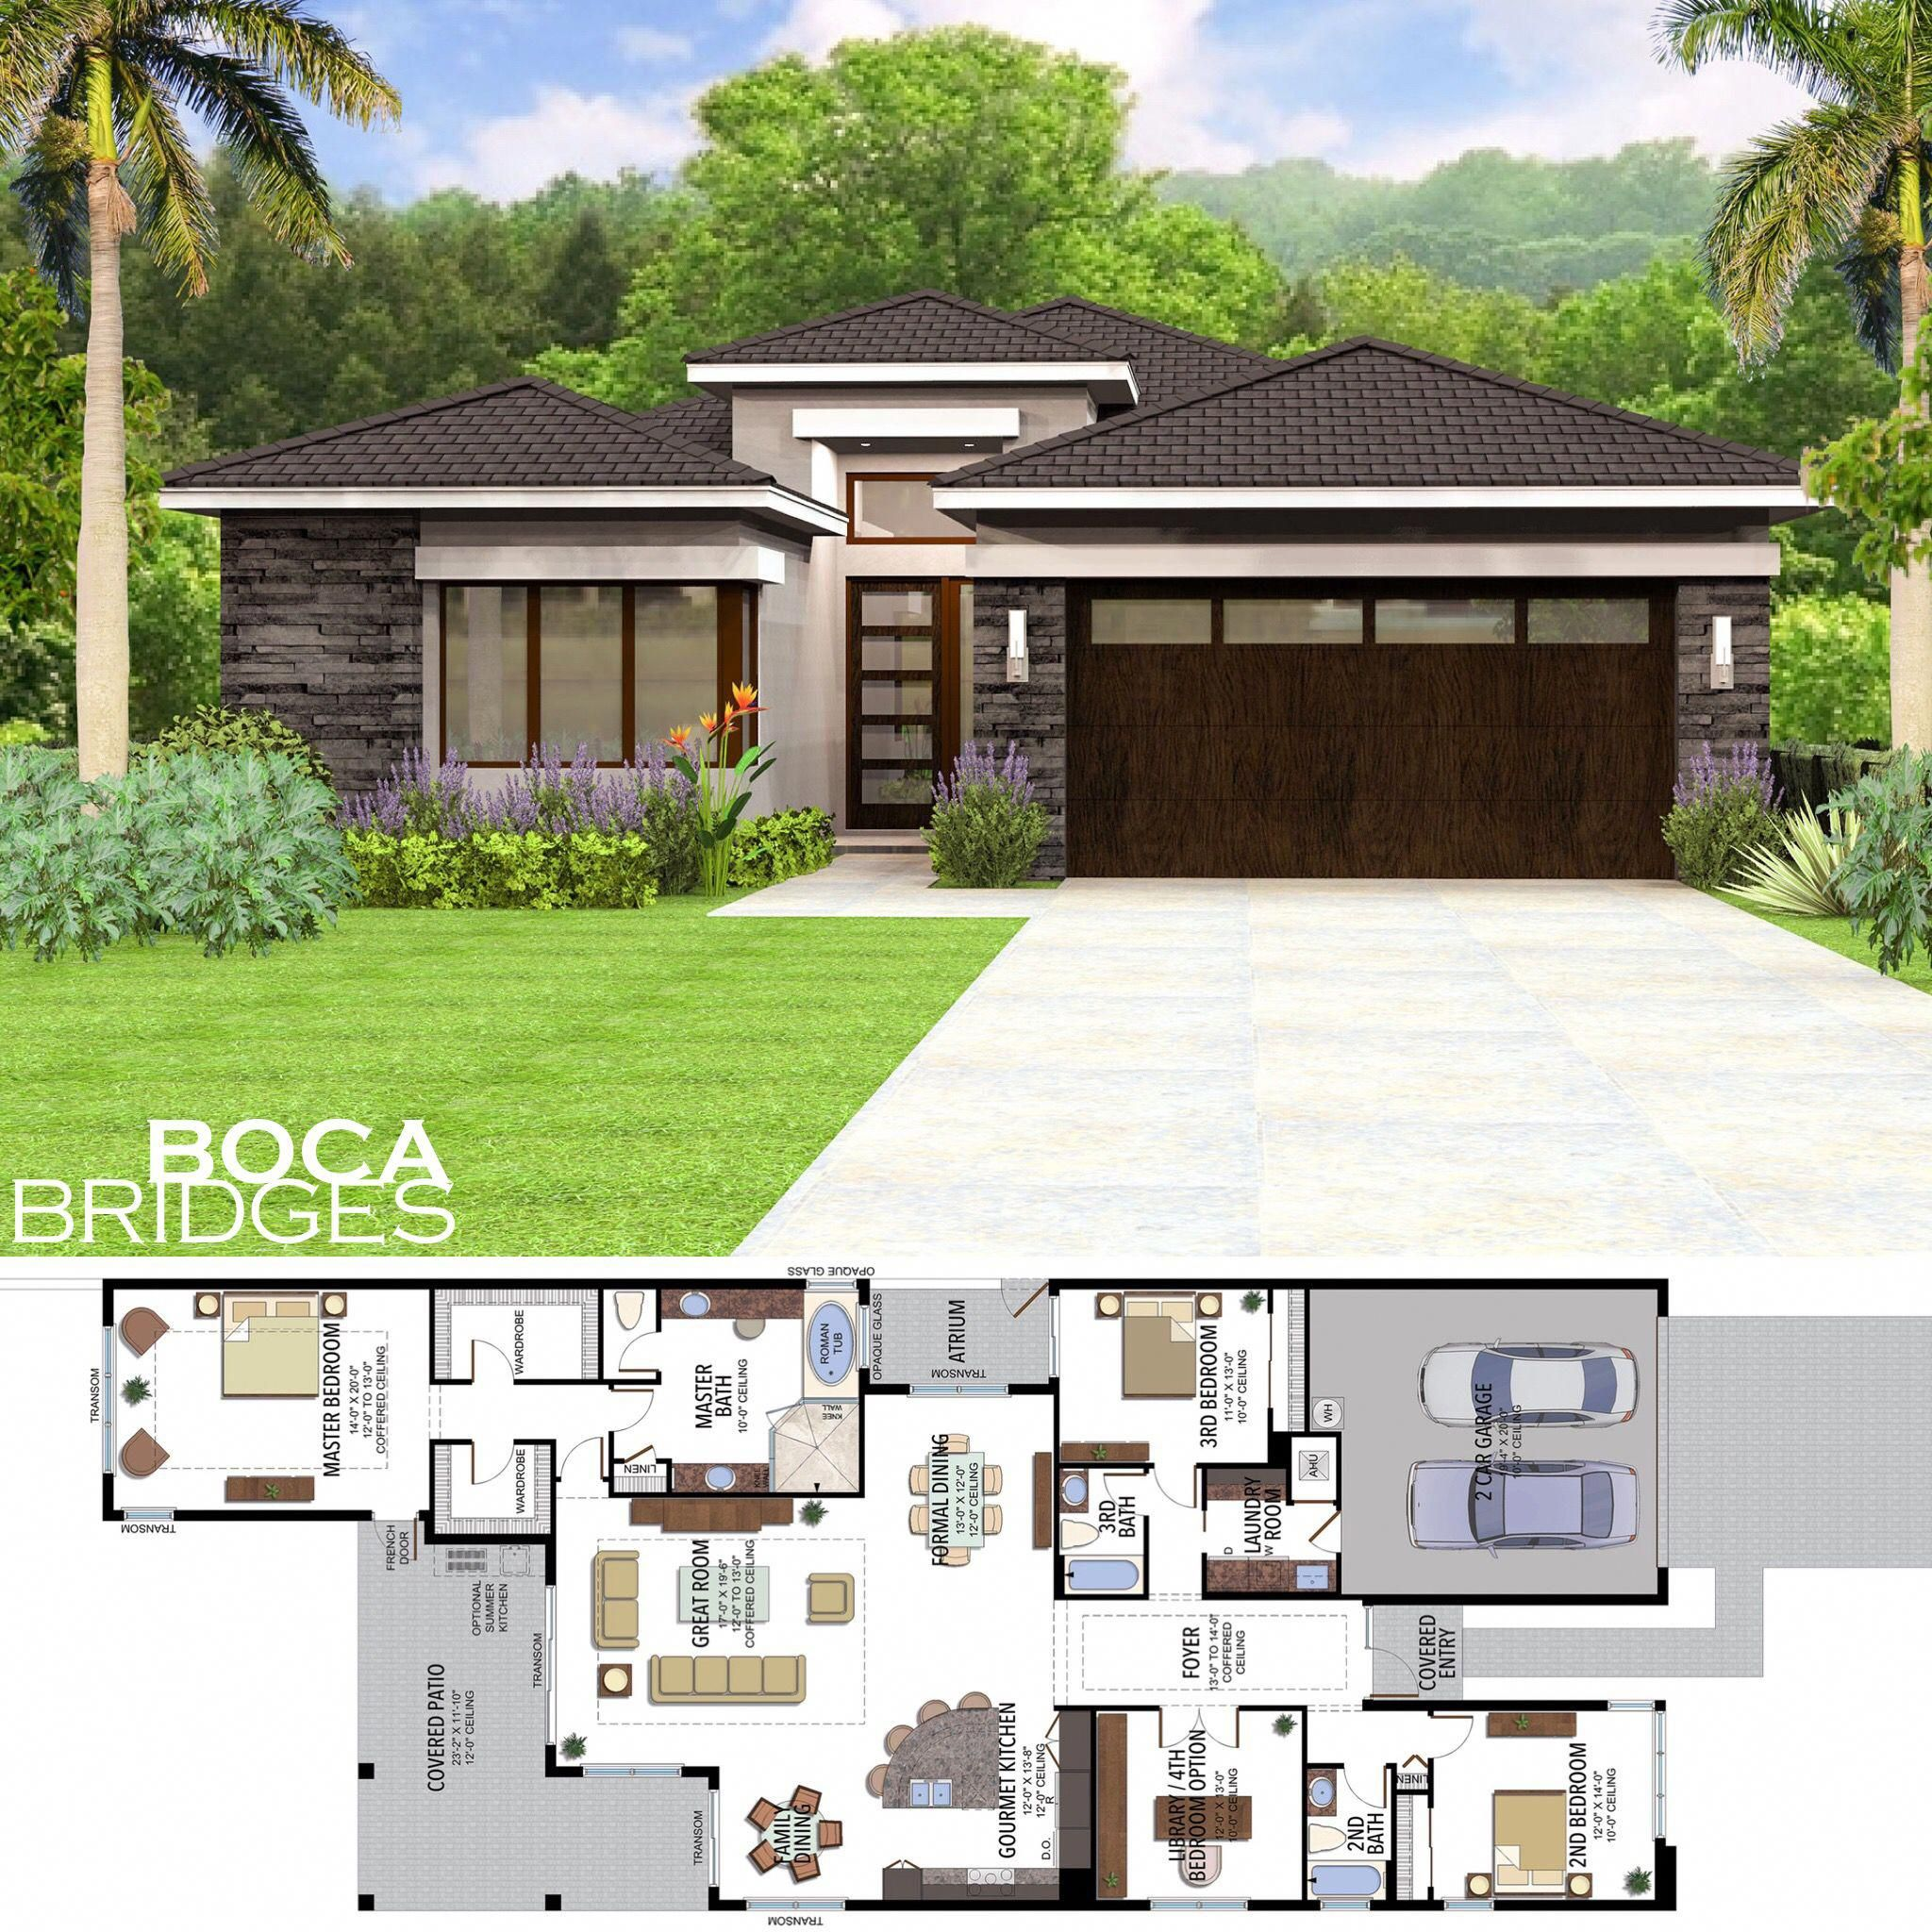 Now Available New Contemporary Home Designs At Bocabridges From The 800 S Follow The Link Our Bio Fo Beautiful House Plans House Plan Gallery House Layouts